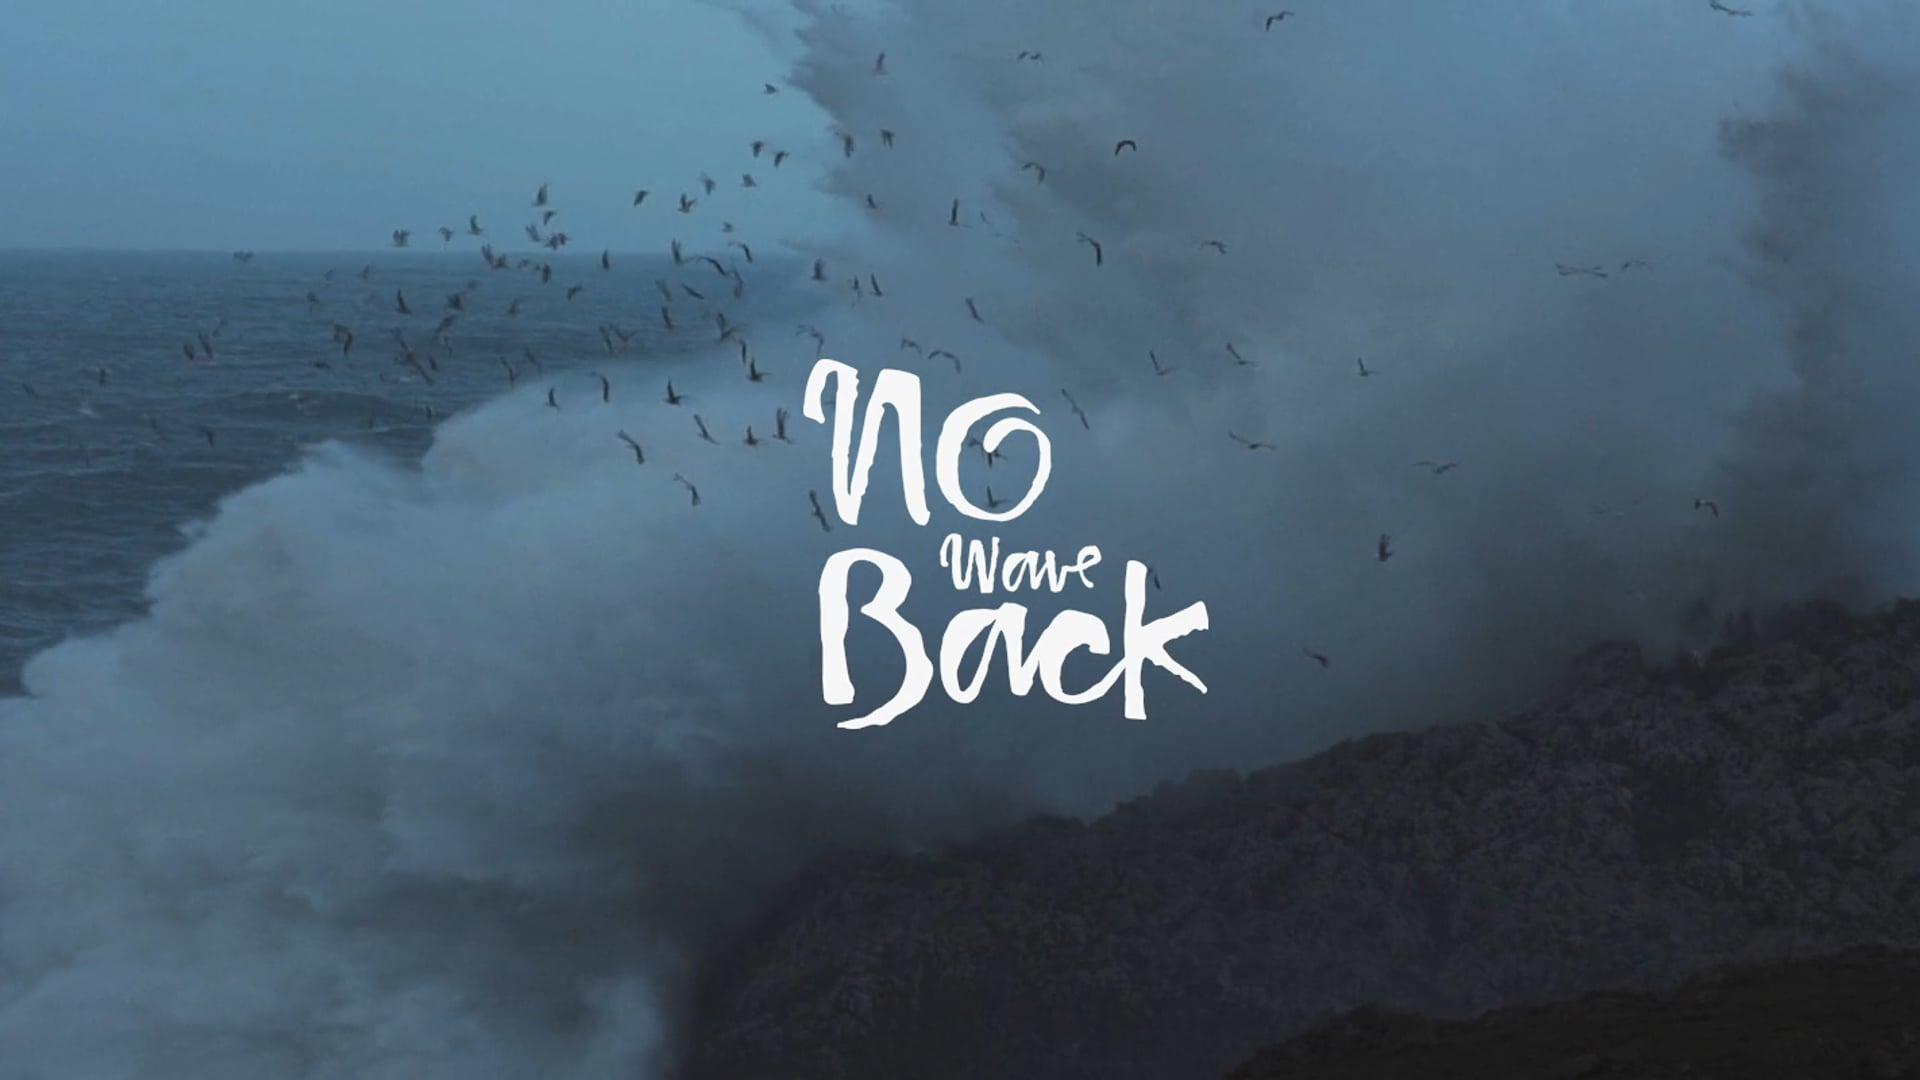 No wave back - Documentary_Trailer /director/